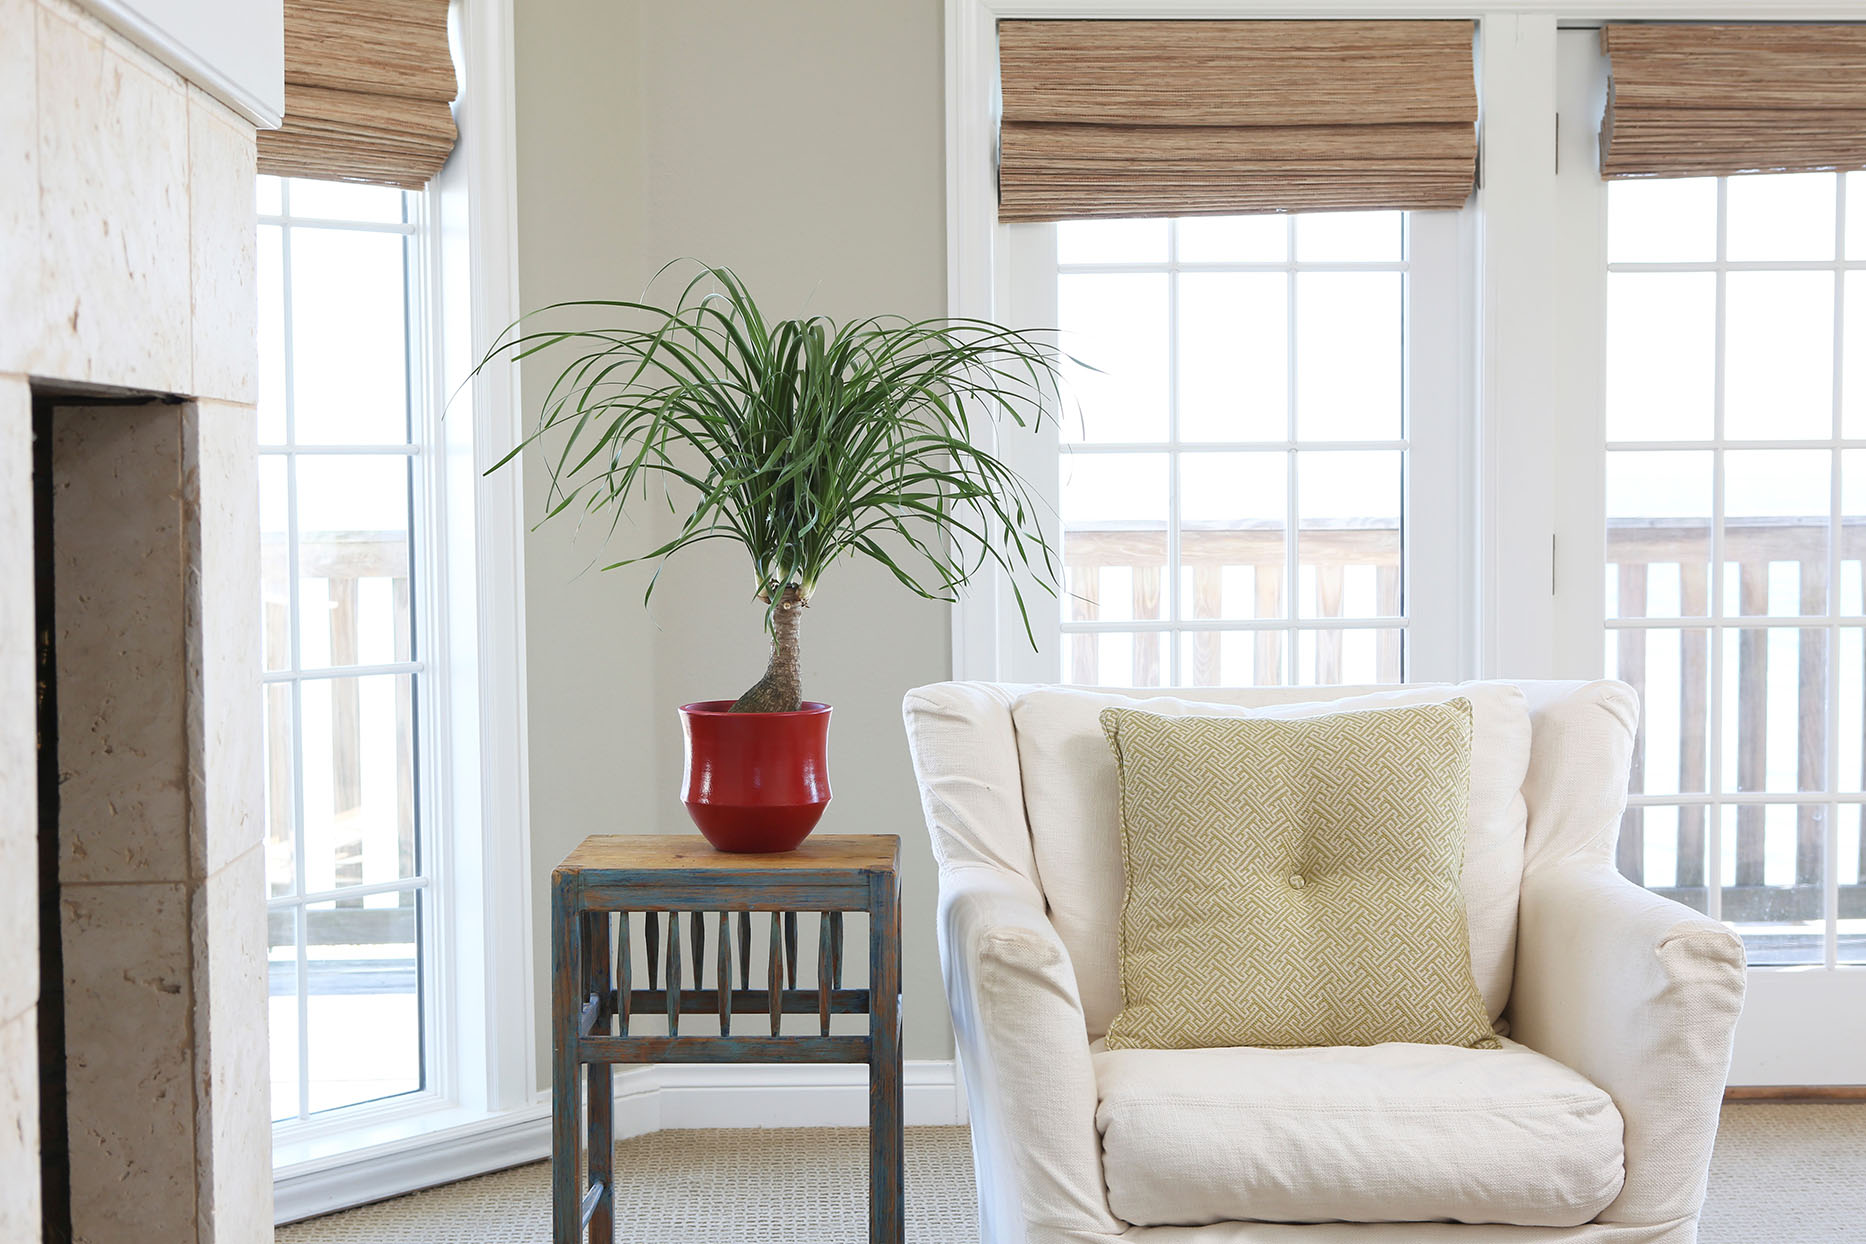 Ponytail palm houseplant in a red ceramic pot on a side table next to an ivory armchair